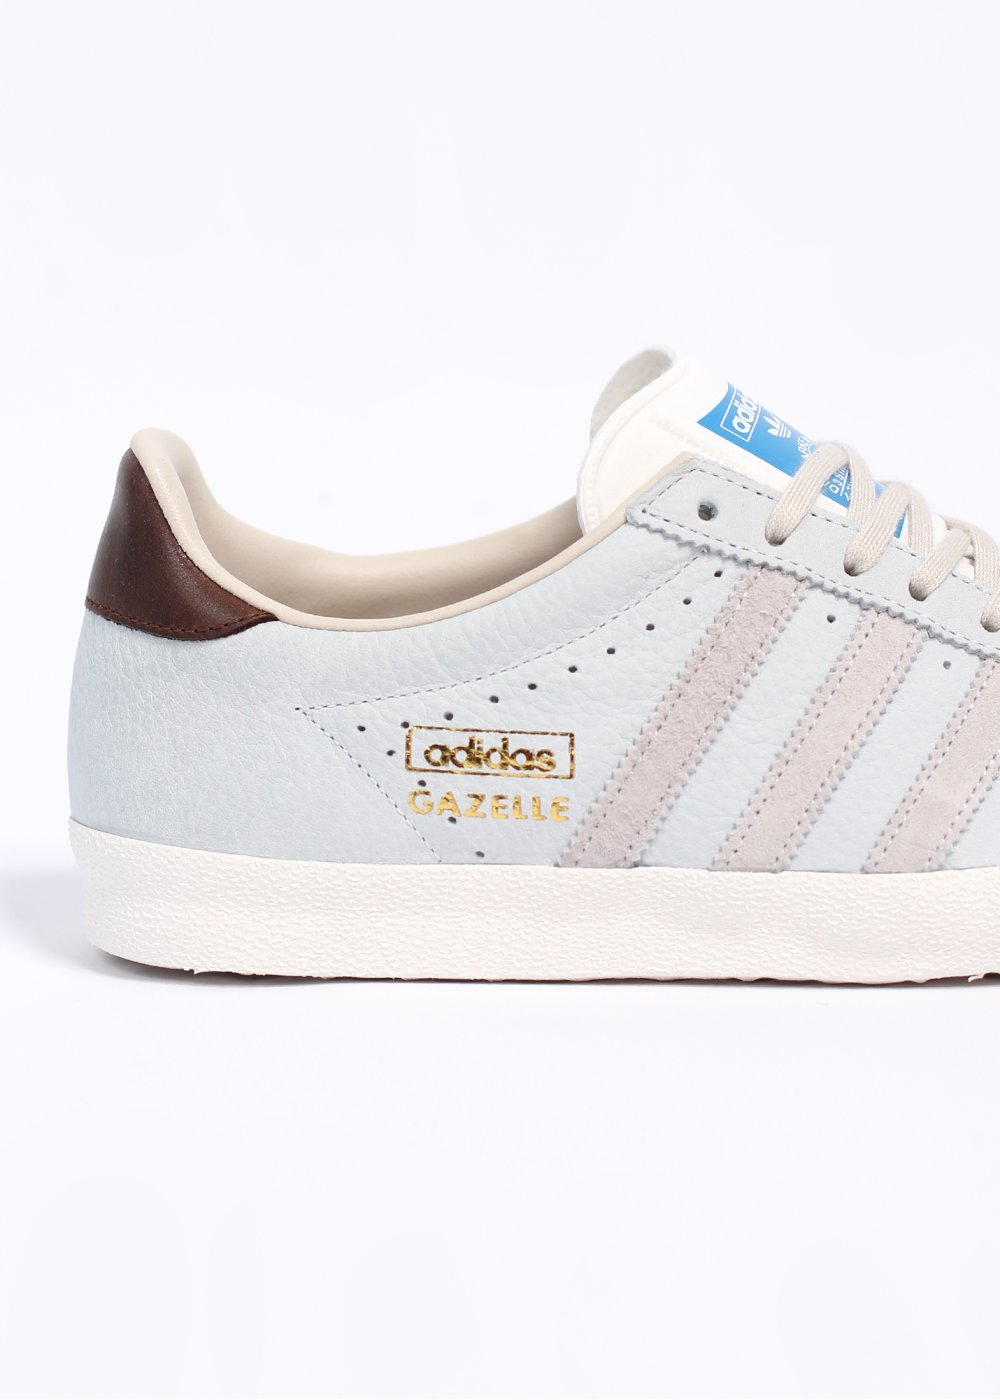 Neo White Navy Red Adidas: Adidas Originals Gazelle OG Punched Leather Trainers